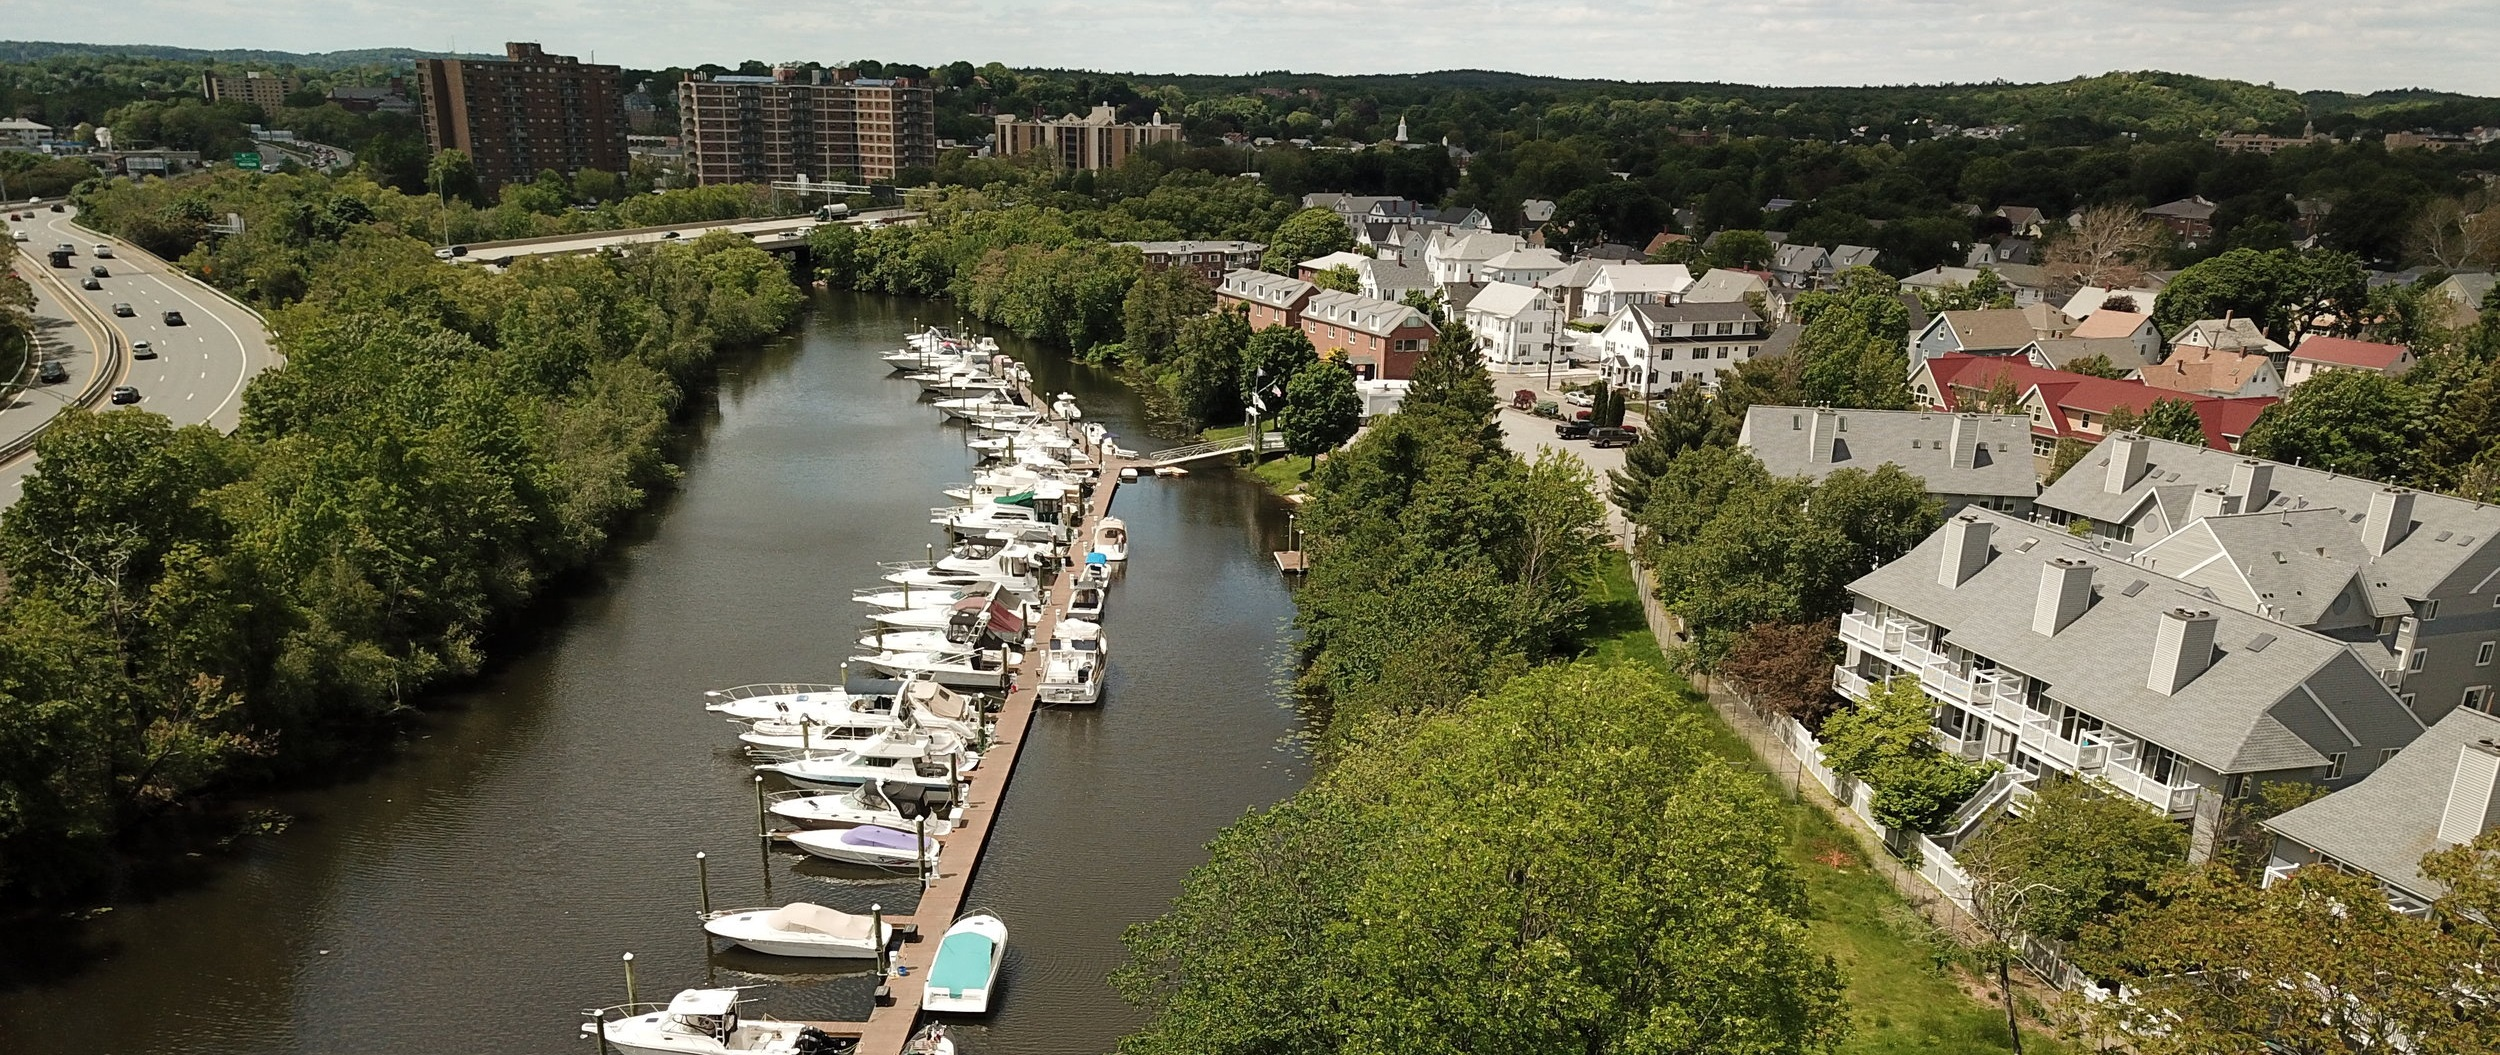 The Clippership Connector starts at Riverbend Park and travels along the Mystic River to Medford Square. Photo: Adam Bolonsky.